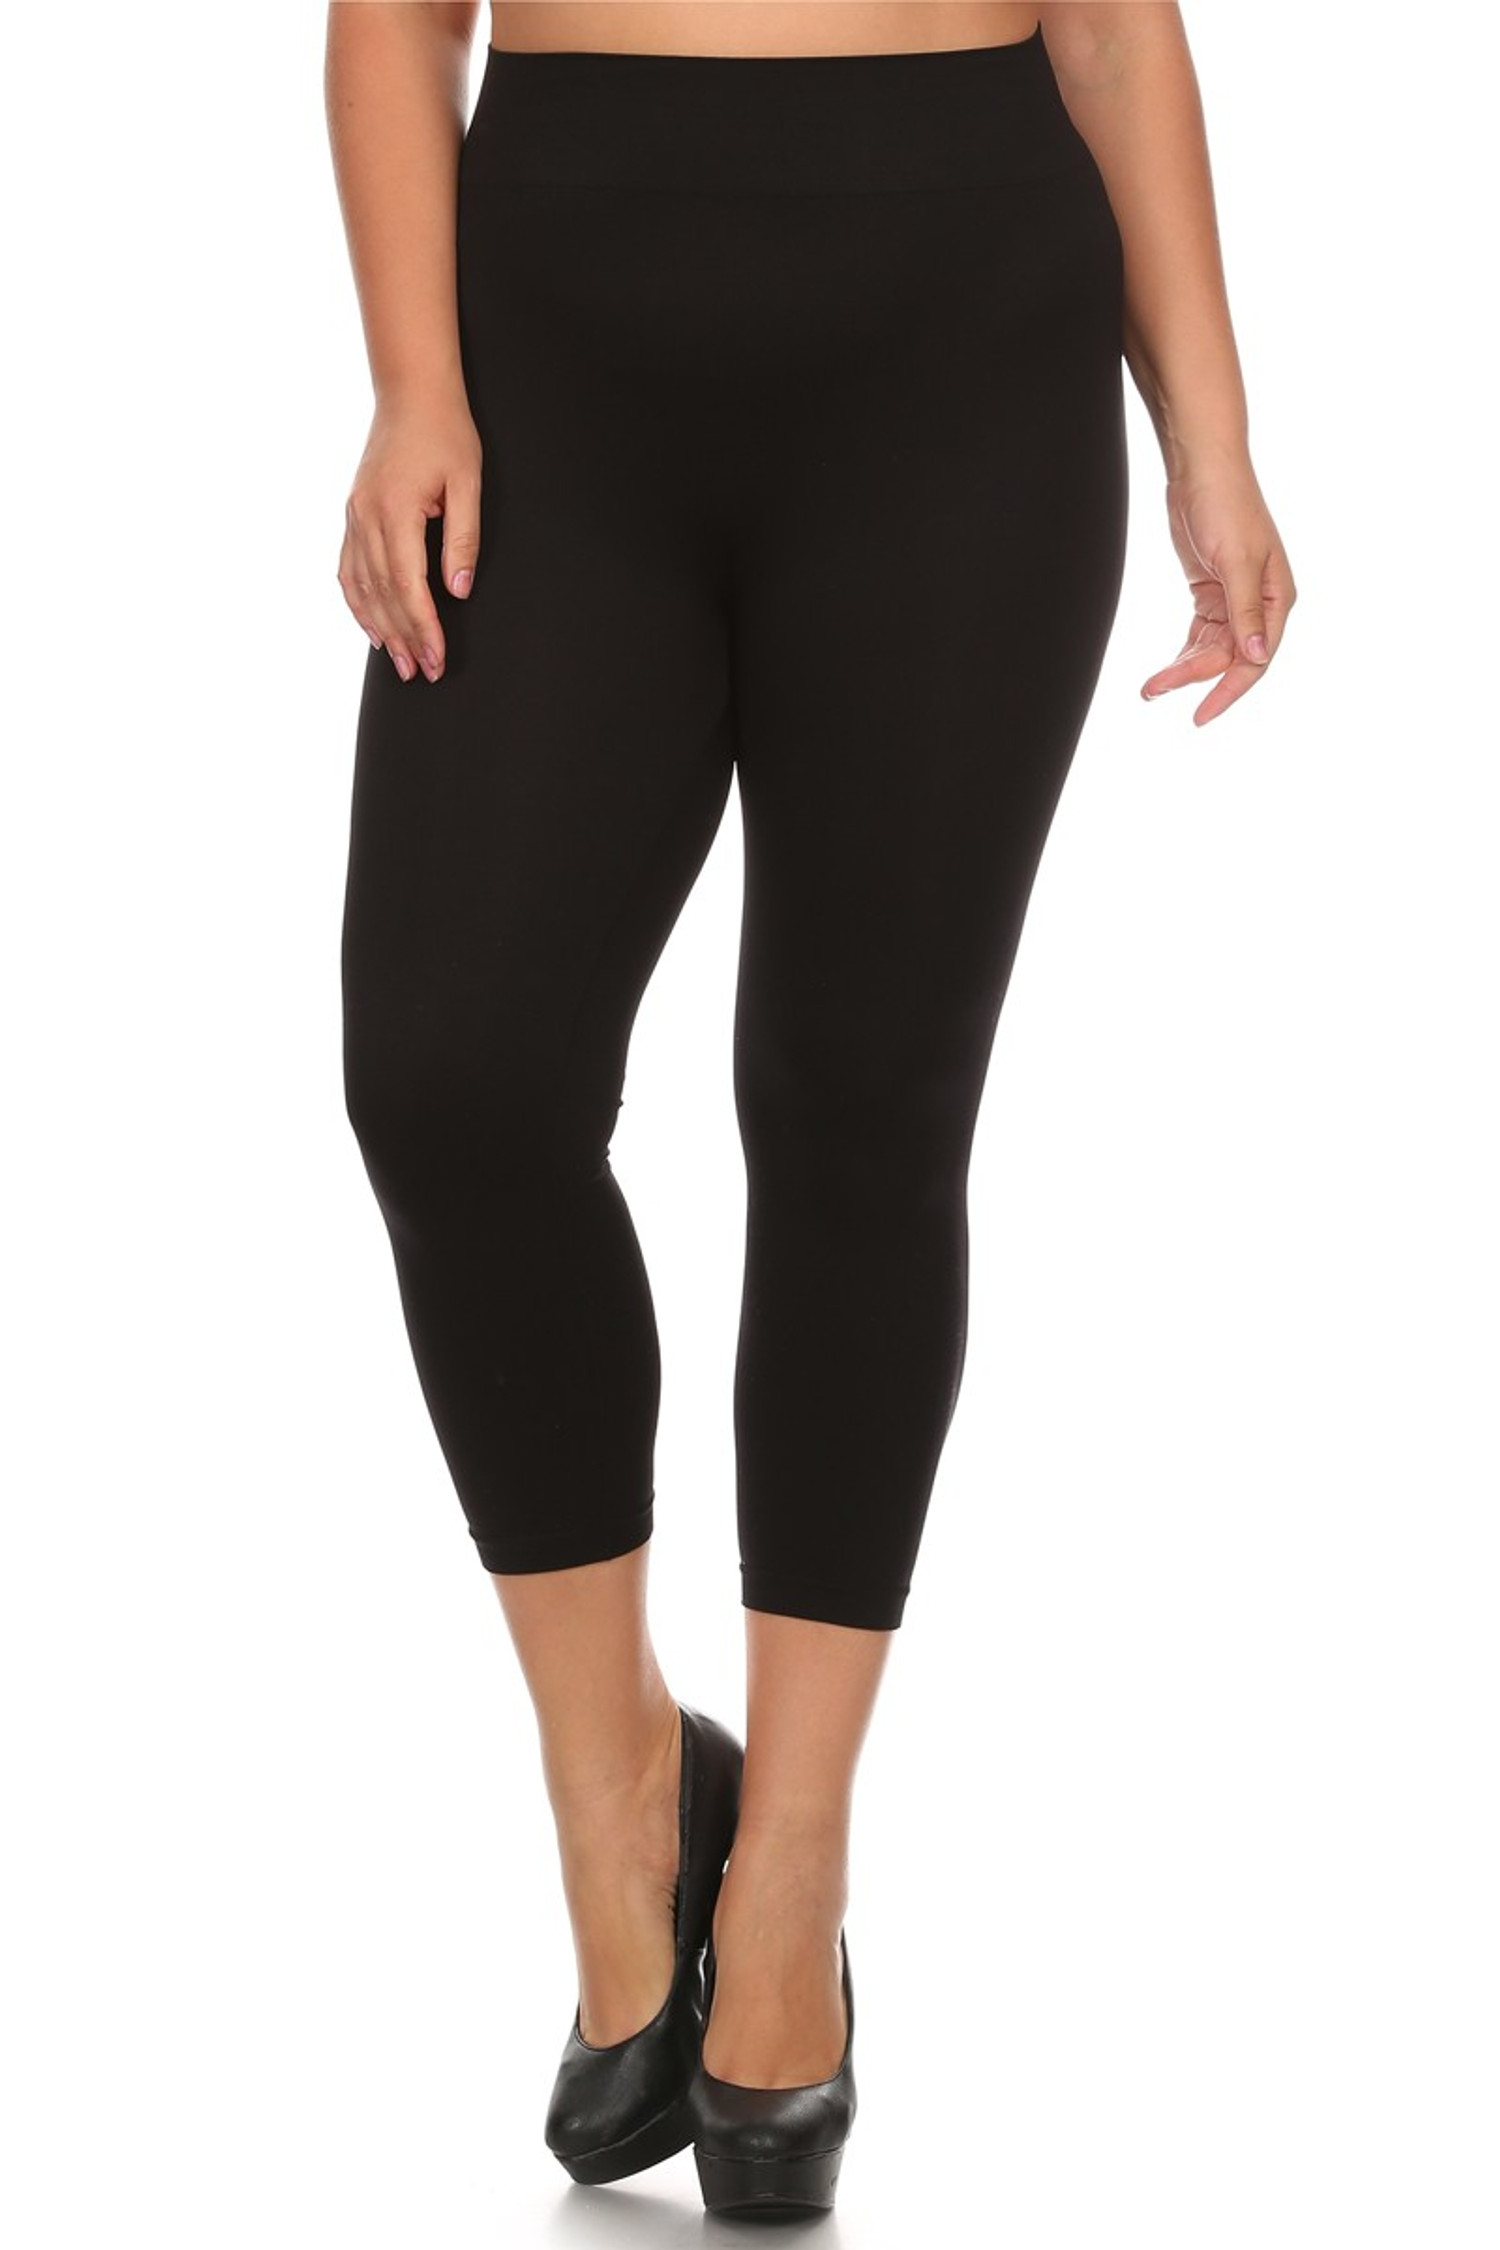 Black Basic Spandex Capri Plus Size Leggings